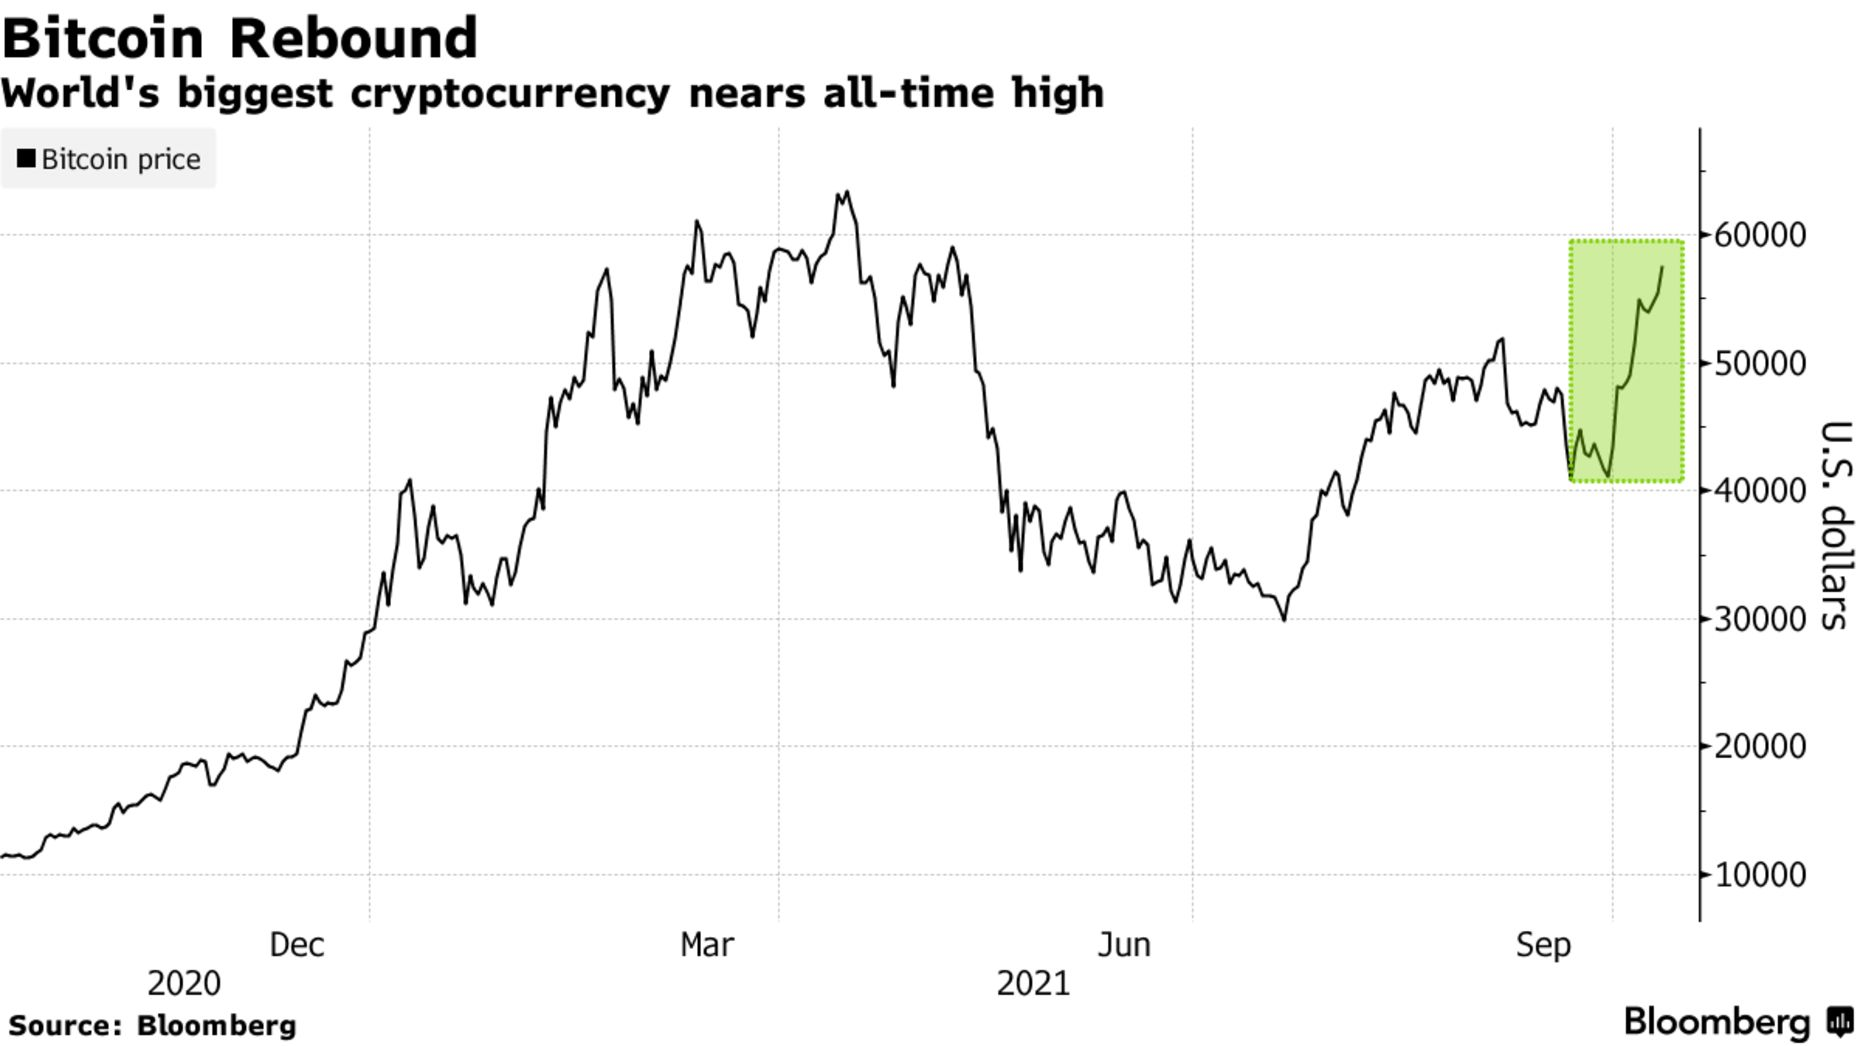 World's biggest cryptocurrency nears all-time high